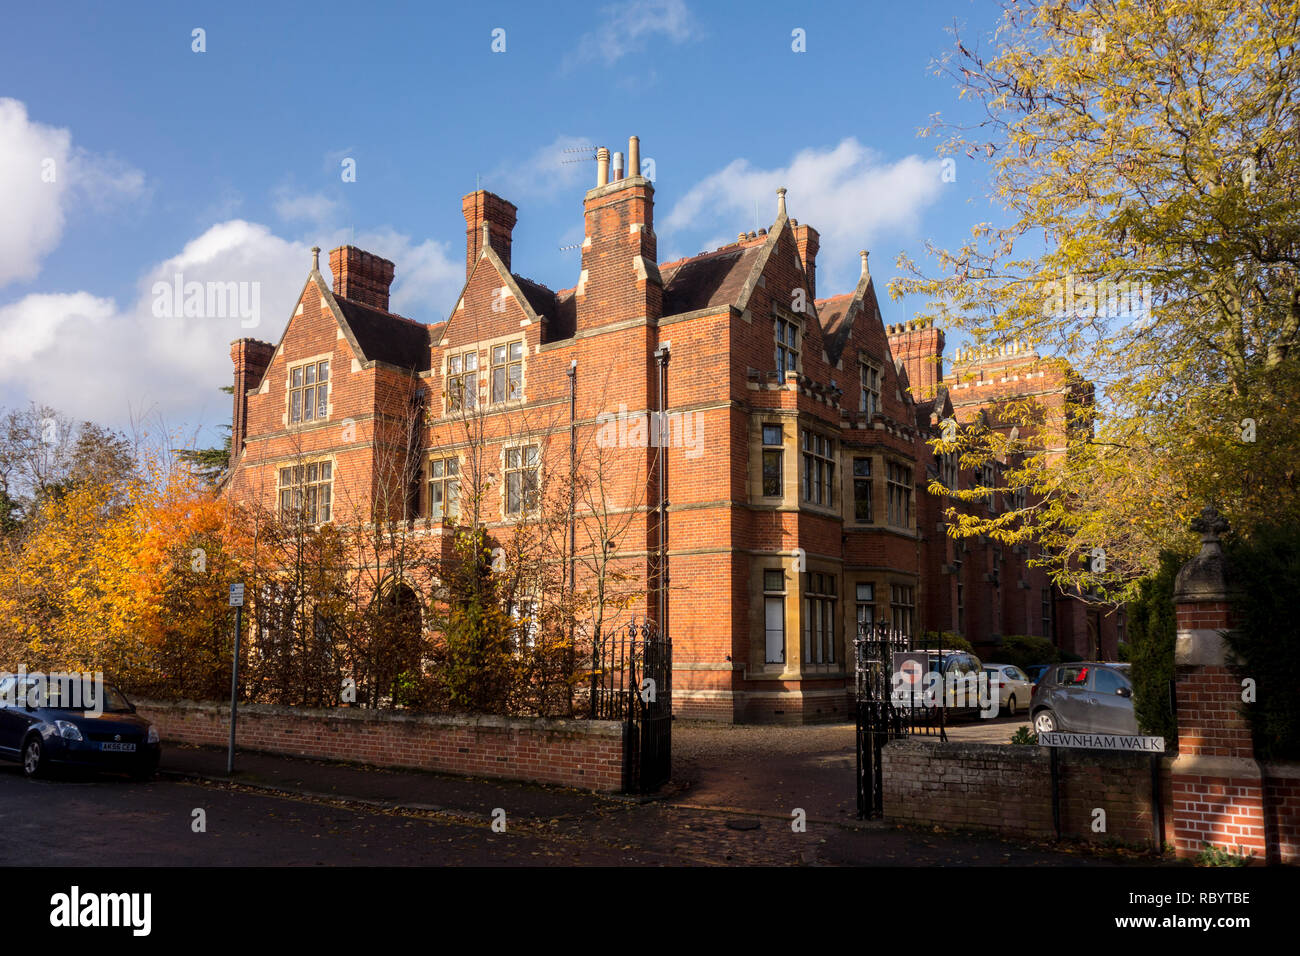 Ridley Hall, Cambridge, Theological College, Cambridge, Royaume-Uni Photo Stock